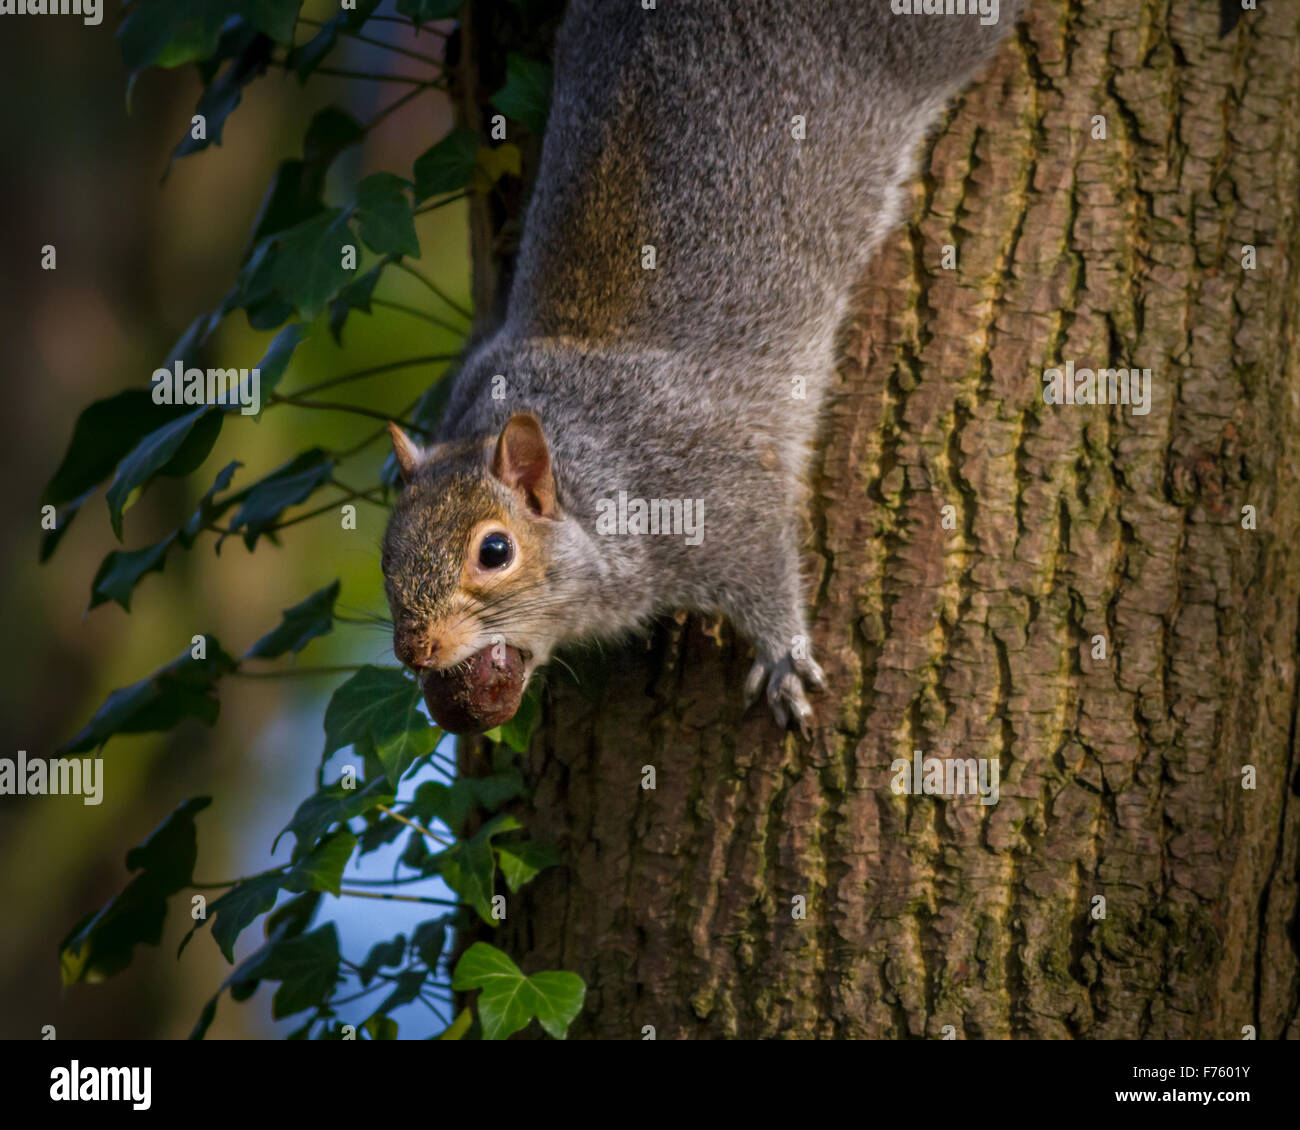 Grey squirrel pausing for a moment with a conker in its mouth - Stock Image